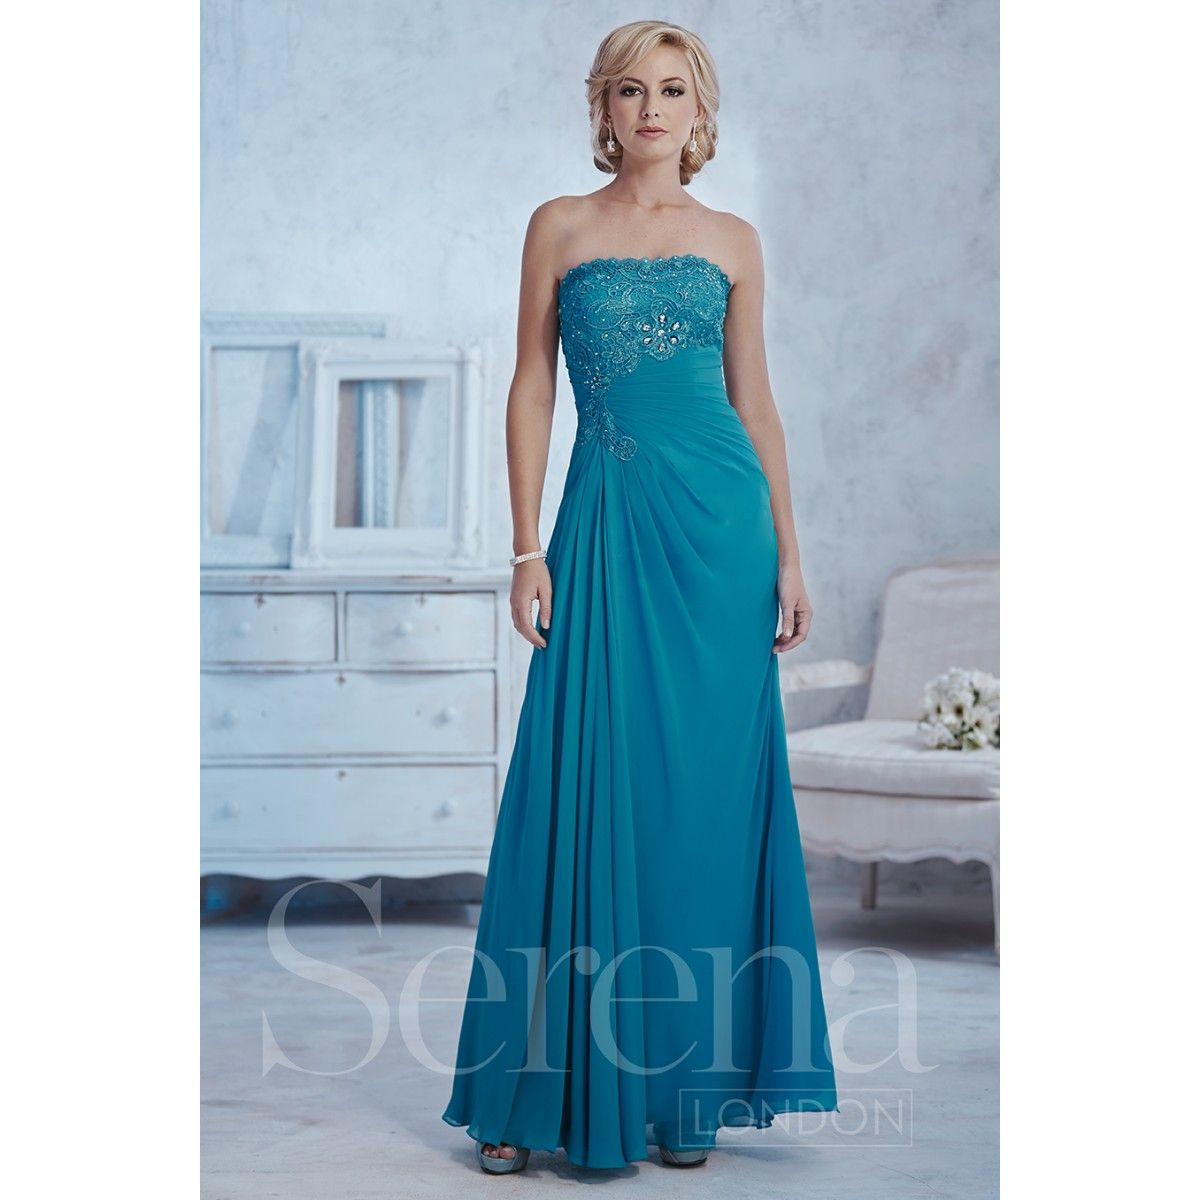 Mothers Dress Available at Ella Park Bridal   Newburgh, IN   812.853 ...